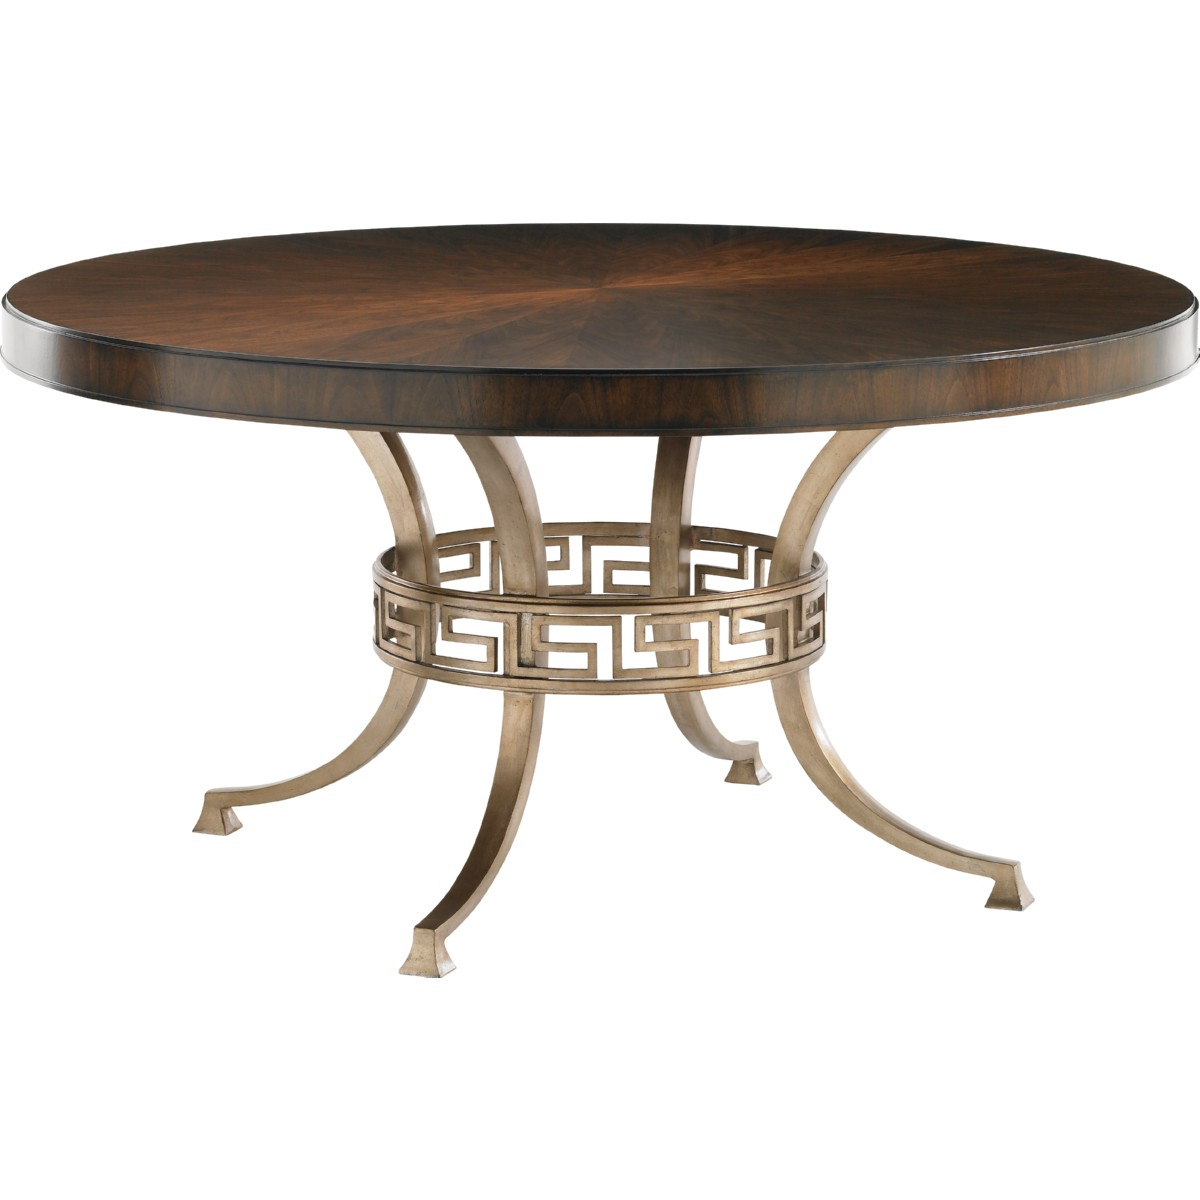 Lexington 706 875c Regis Round Dining Table W Cathedral